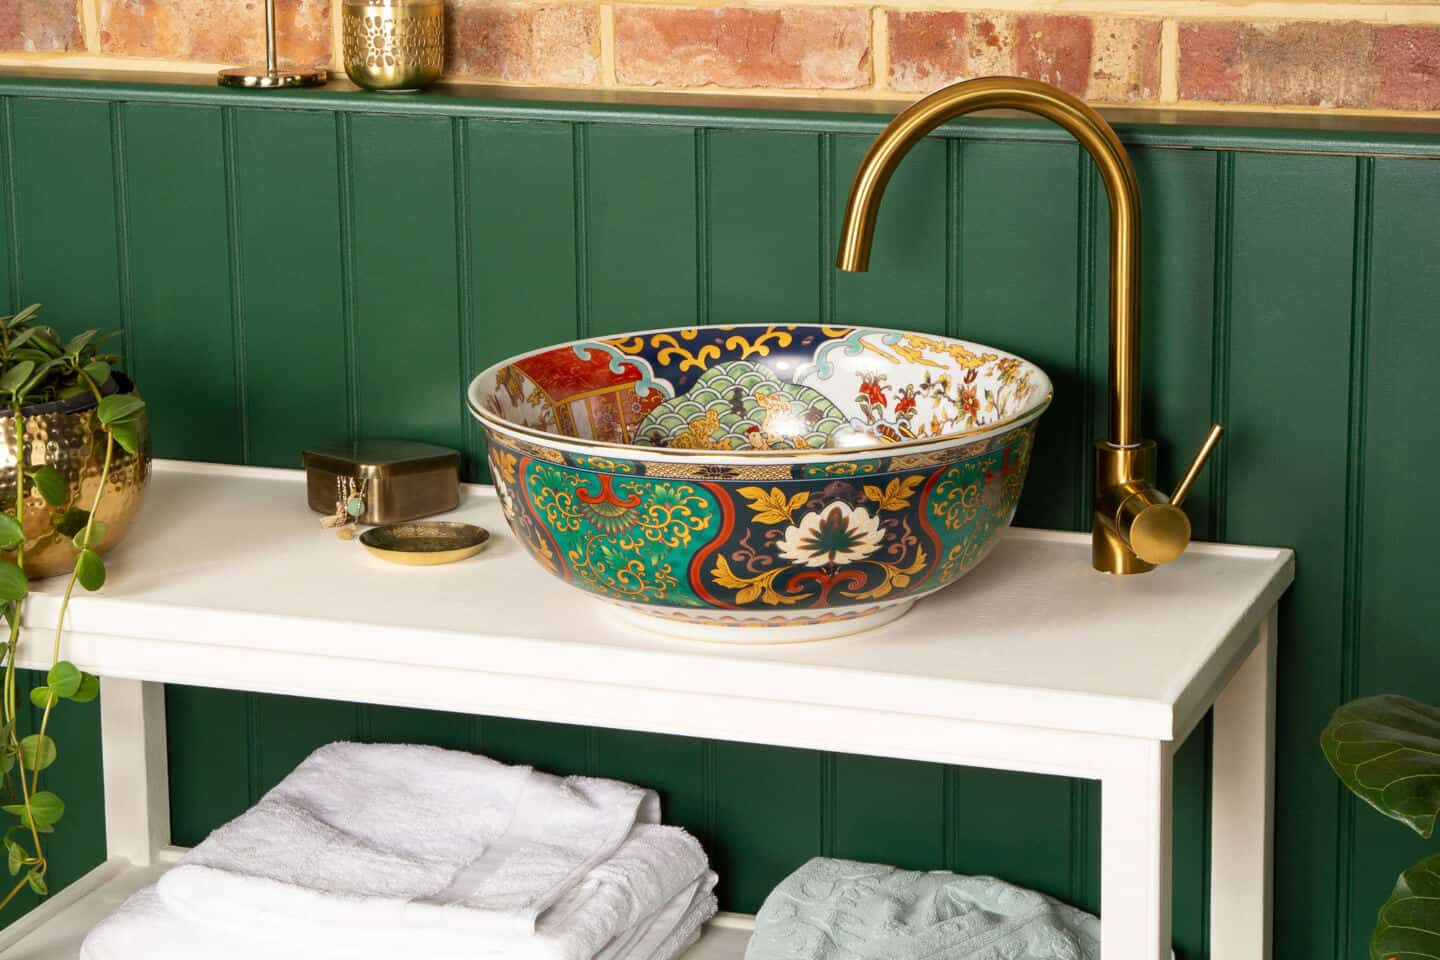 An round bathroom basin with oriental style pattern and colours rests on a vanity unity in front of a green wall